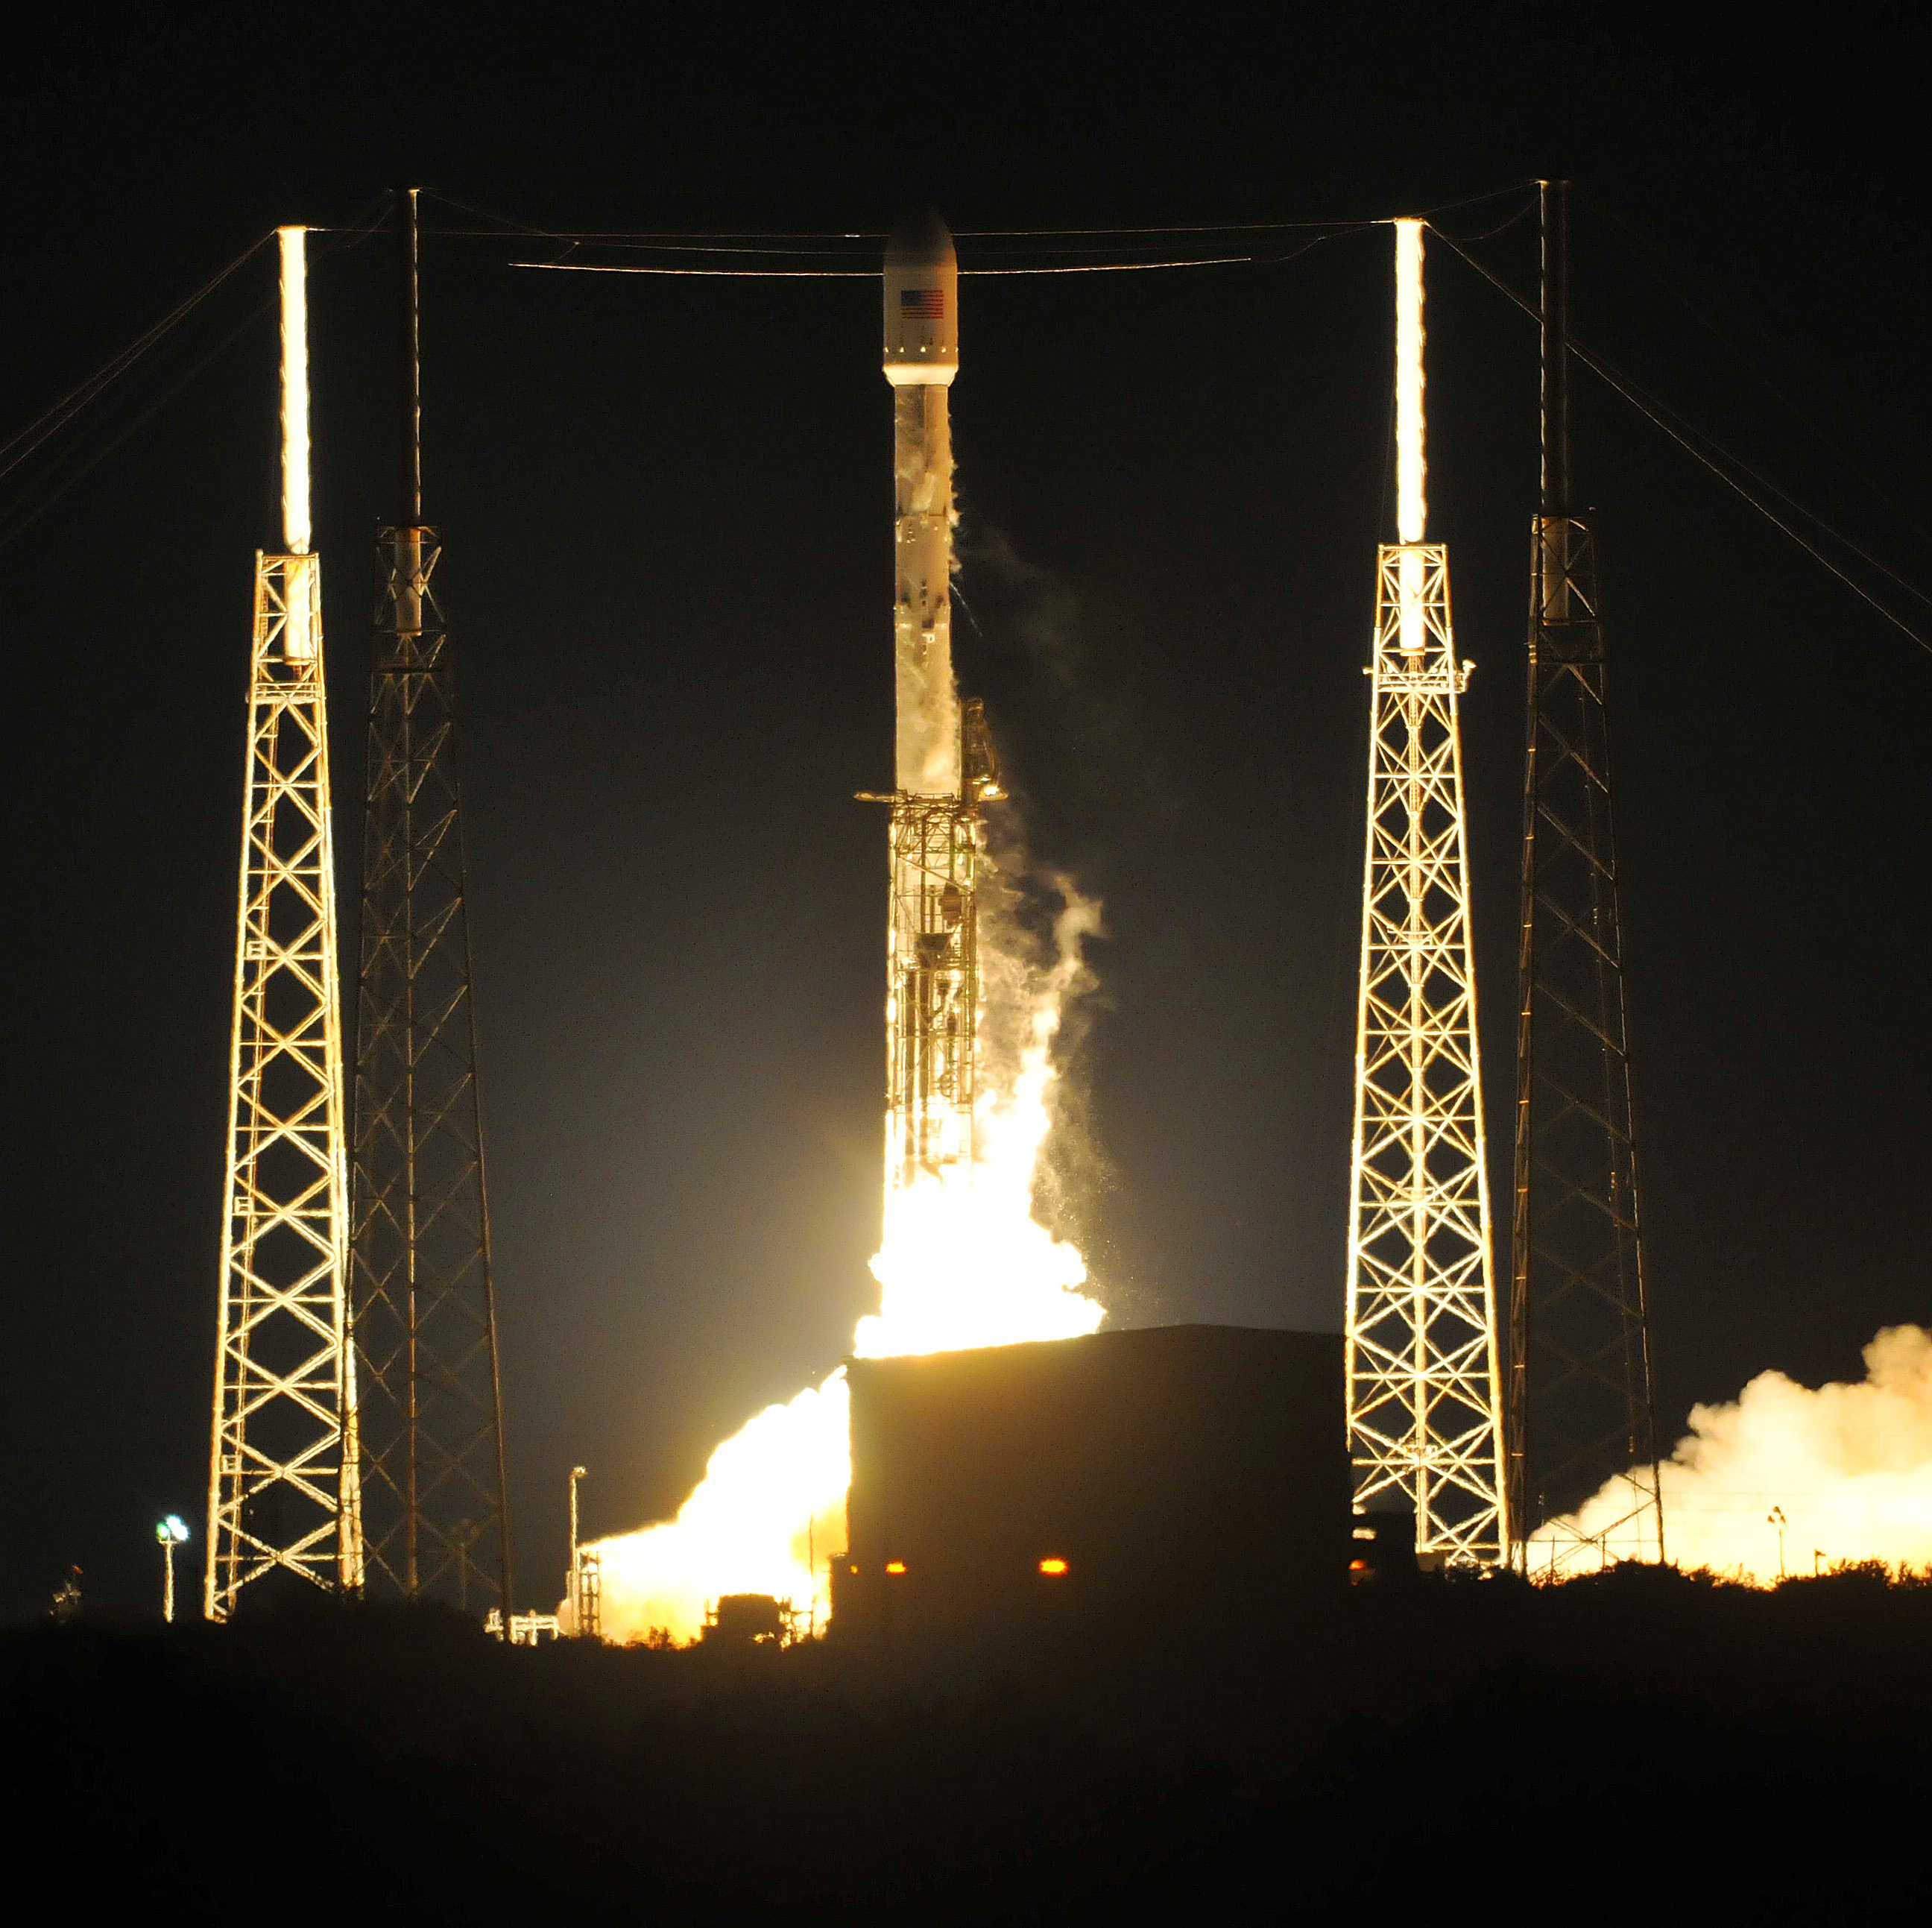 SpaceX rocket blasts off from Cape Canaveral | THV11.com